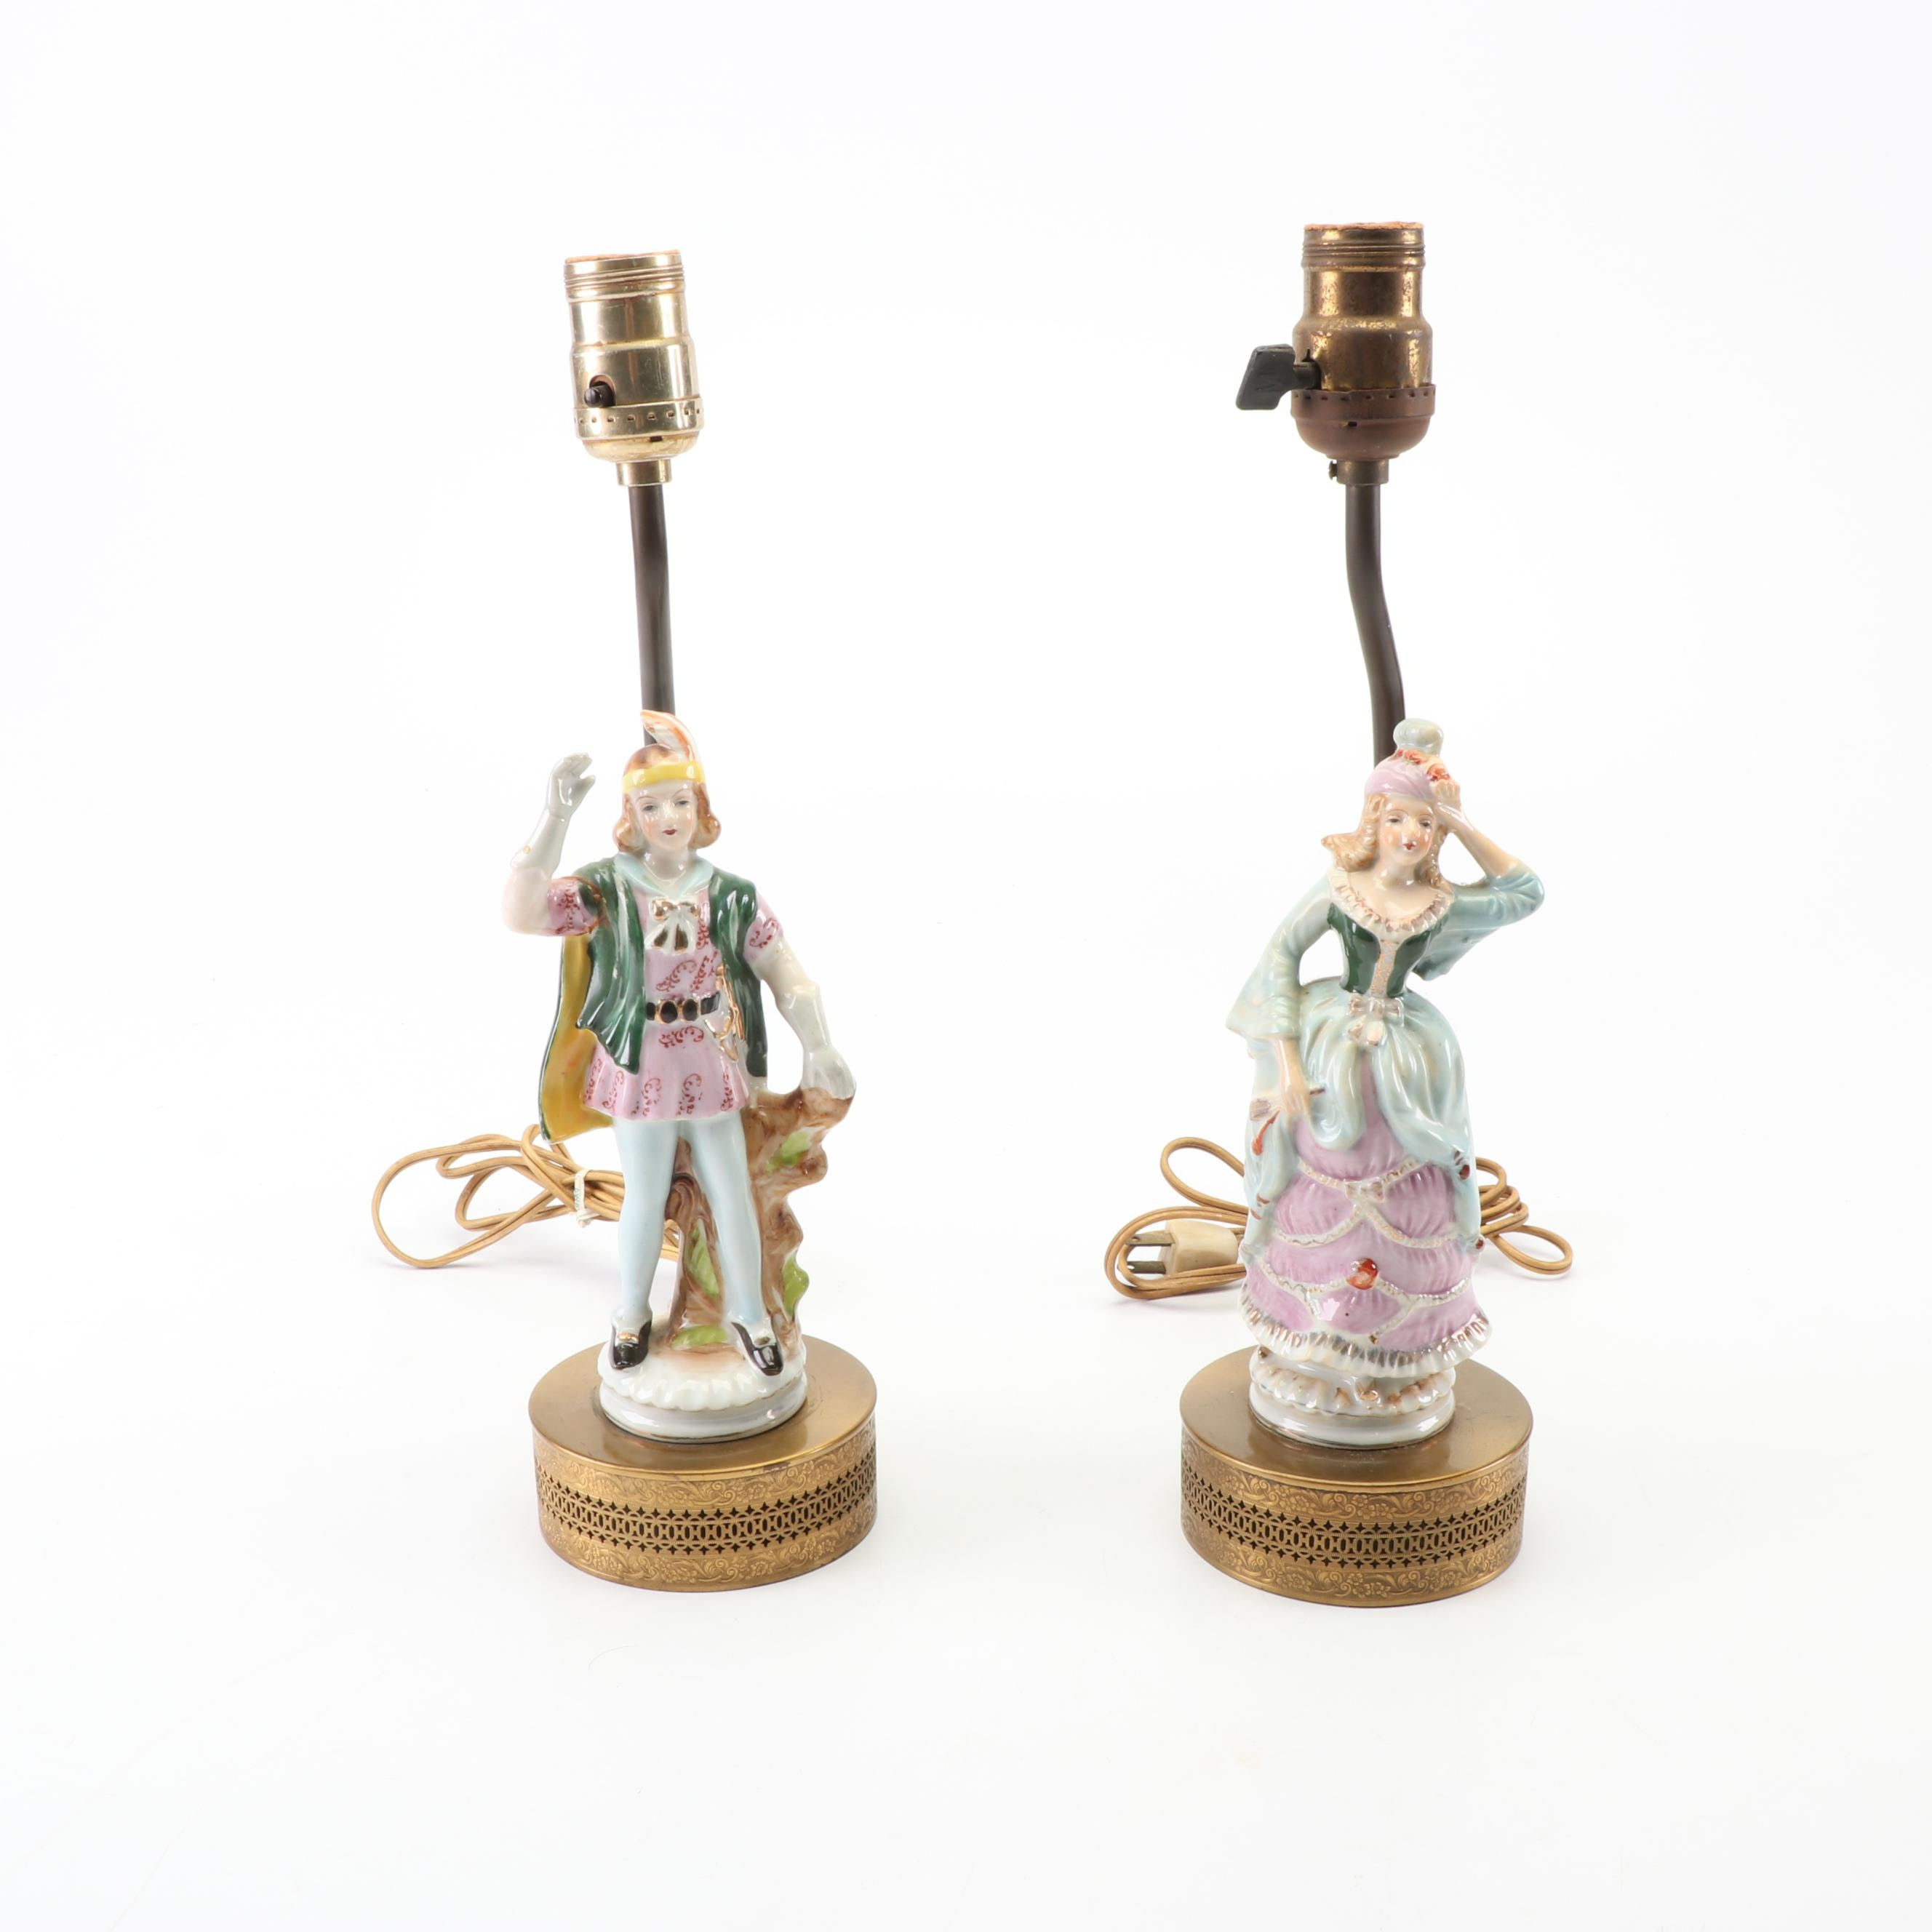 Hand-Painted Figural Male and Female Porcelain Table Lamps with Openwork Bases